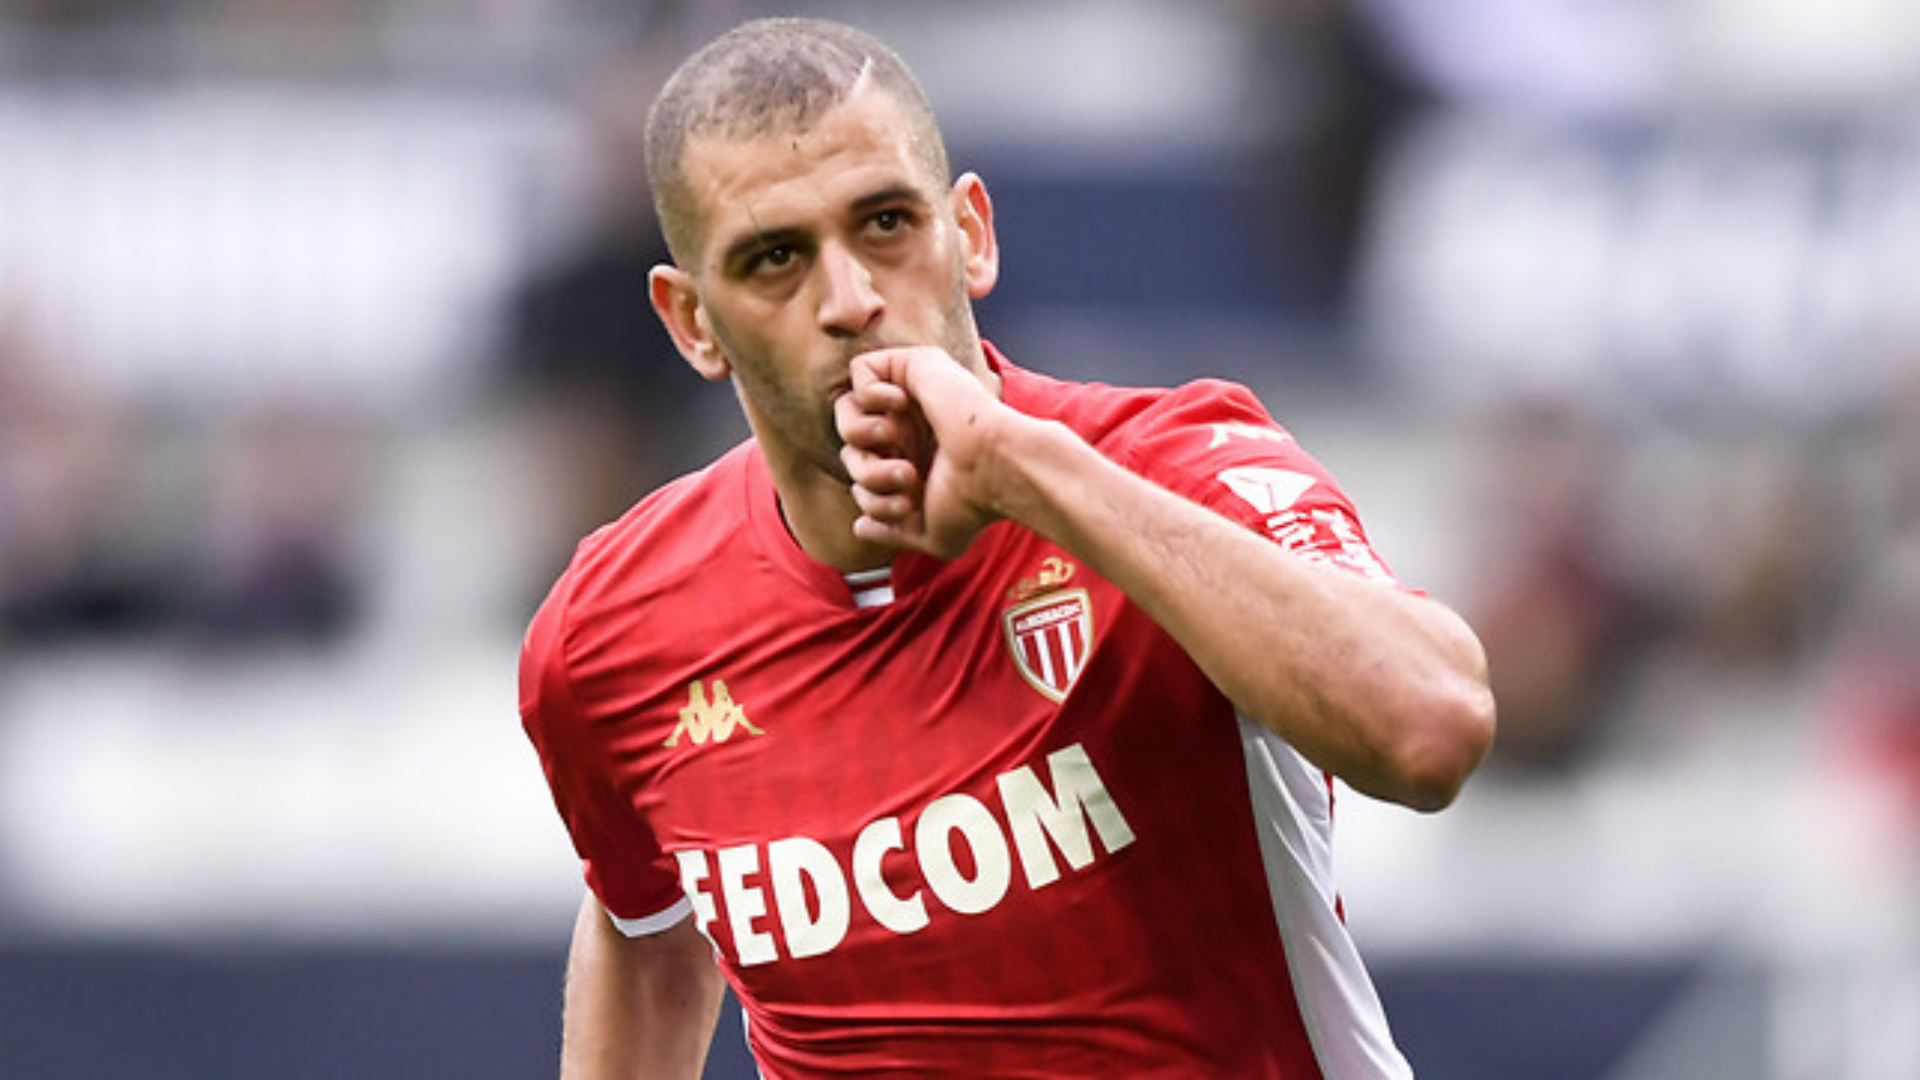 Monaco striker Slimani hailed as 'serial killer' by ex-Leicester City teammate Benalouane